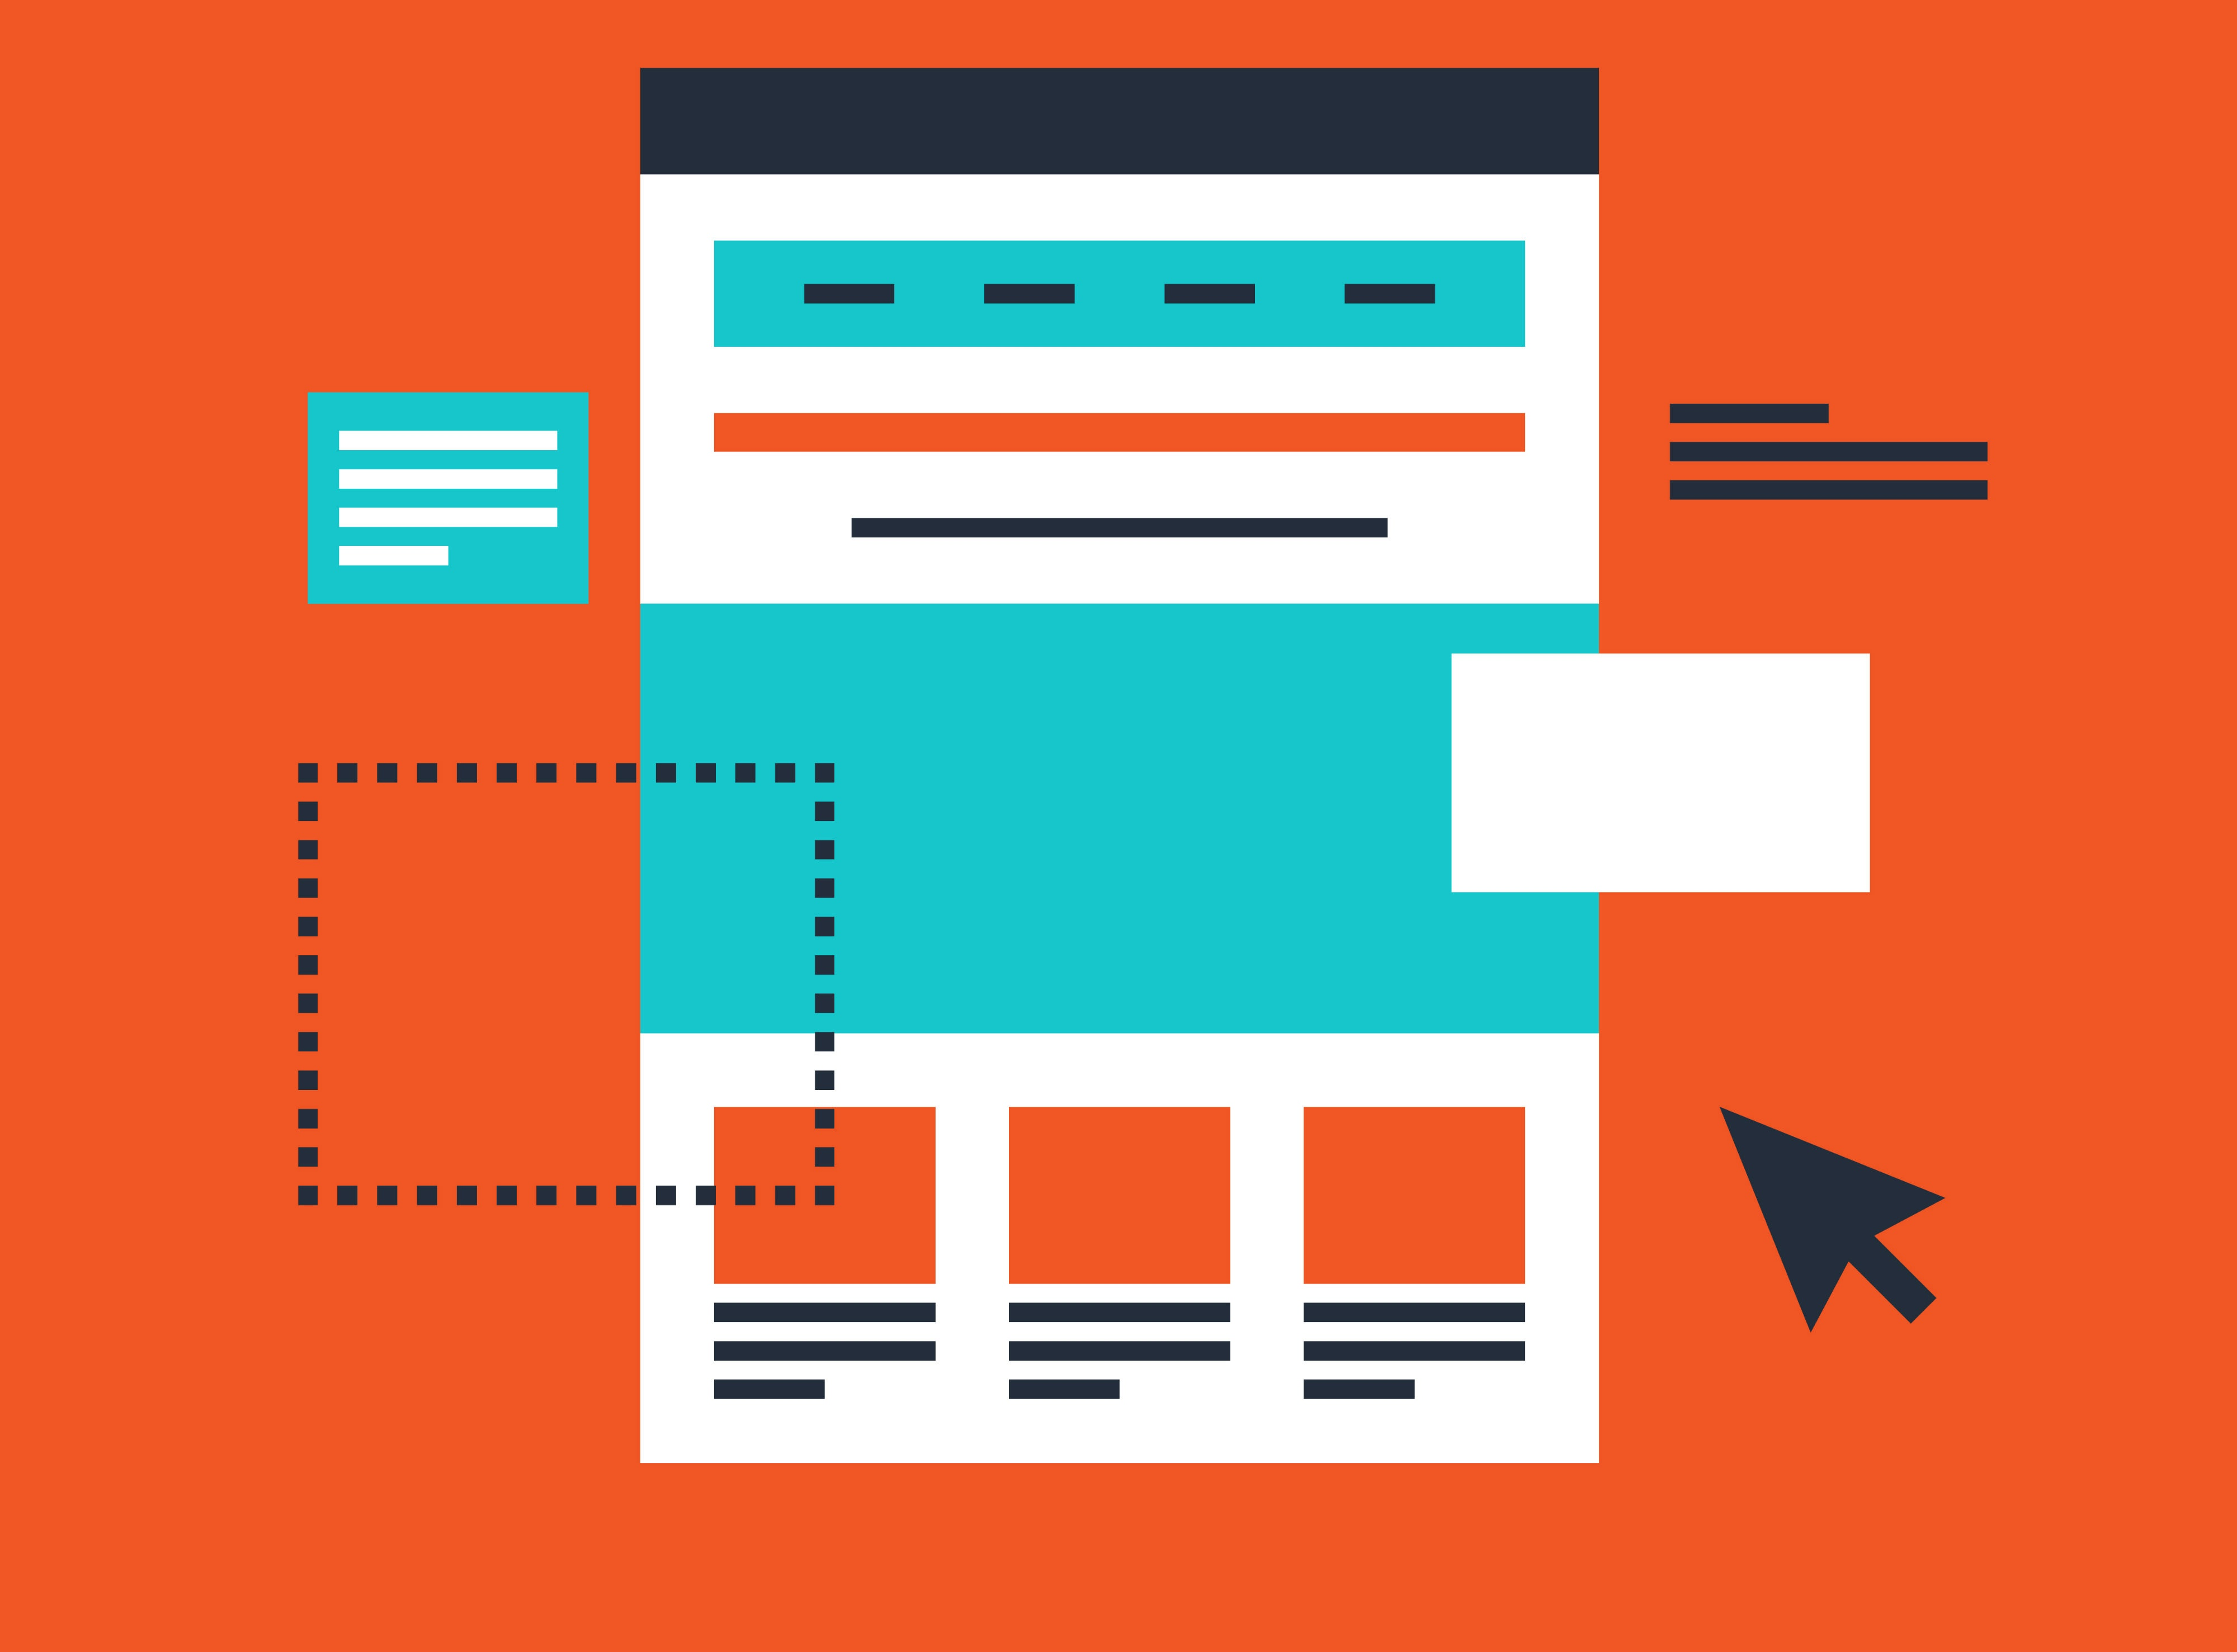 improve user experience through site navigation